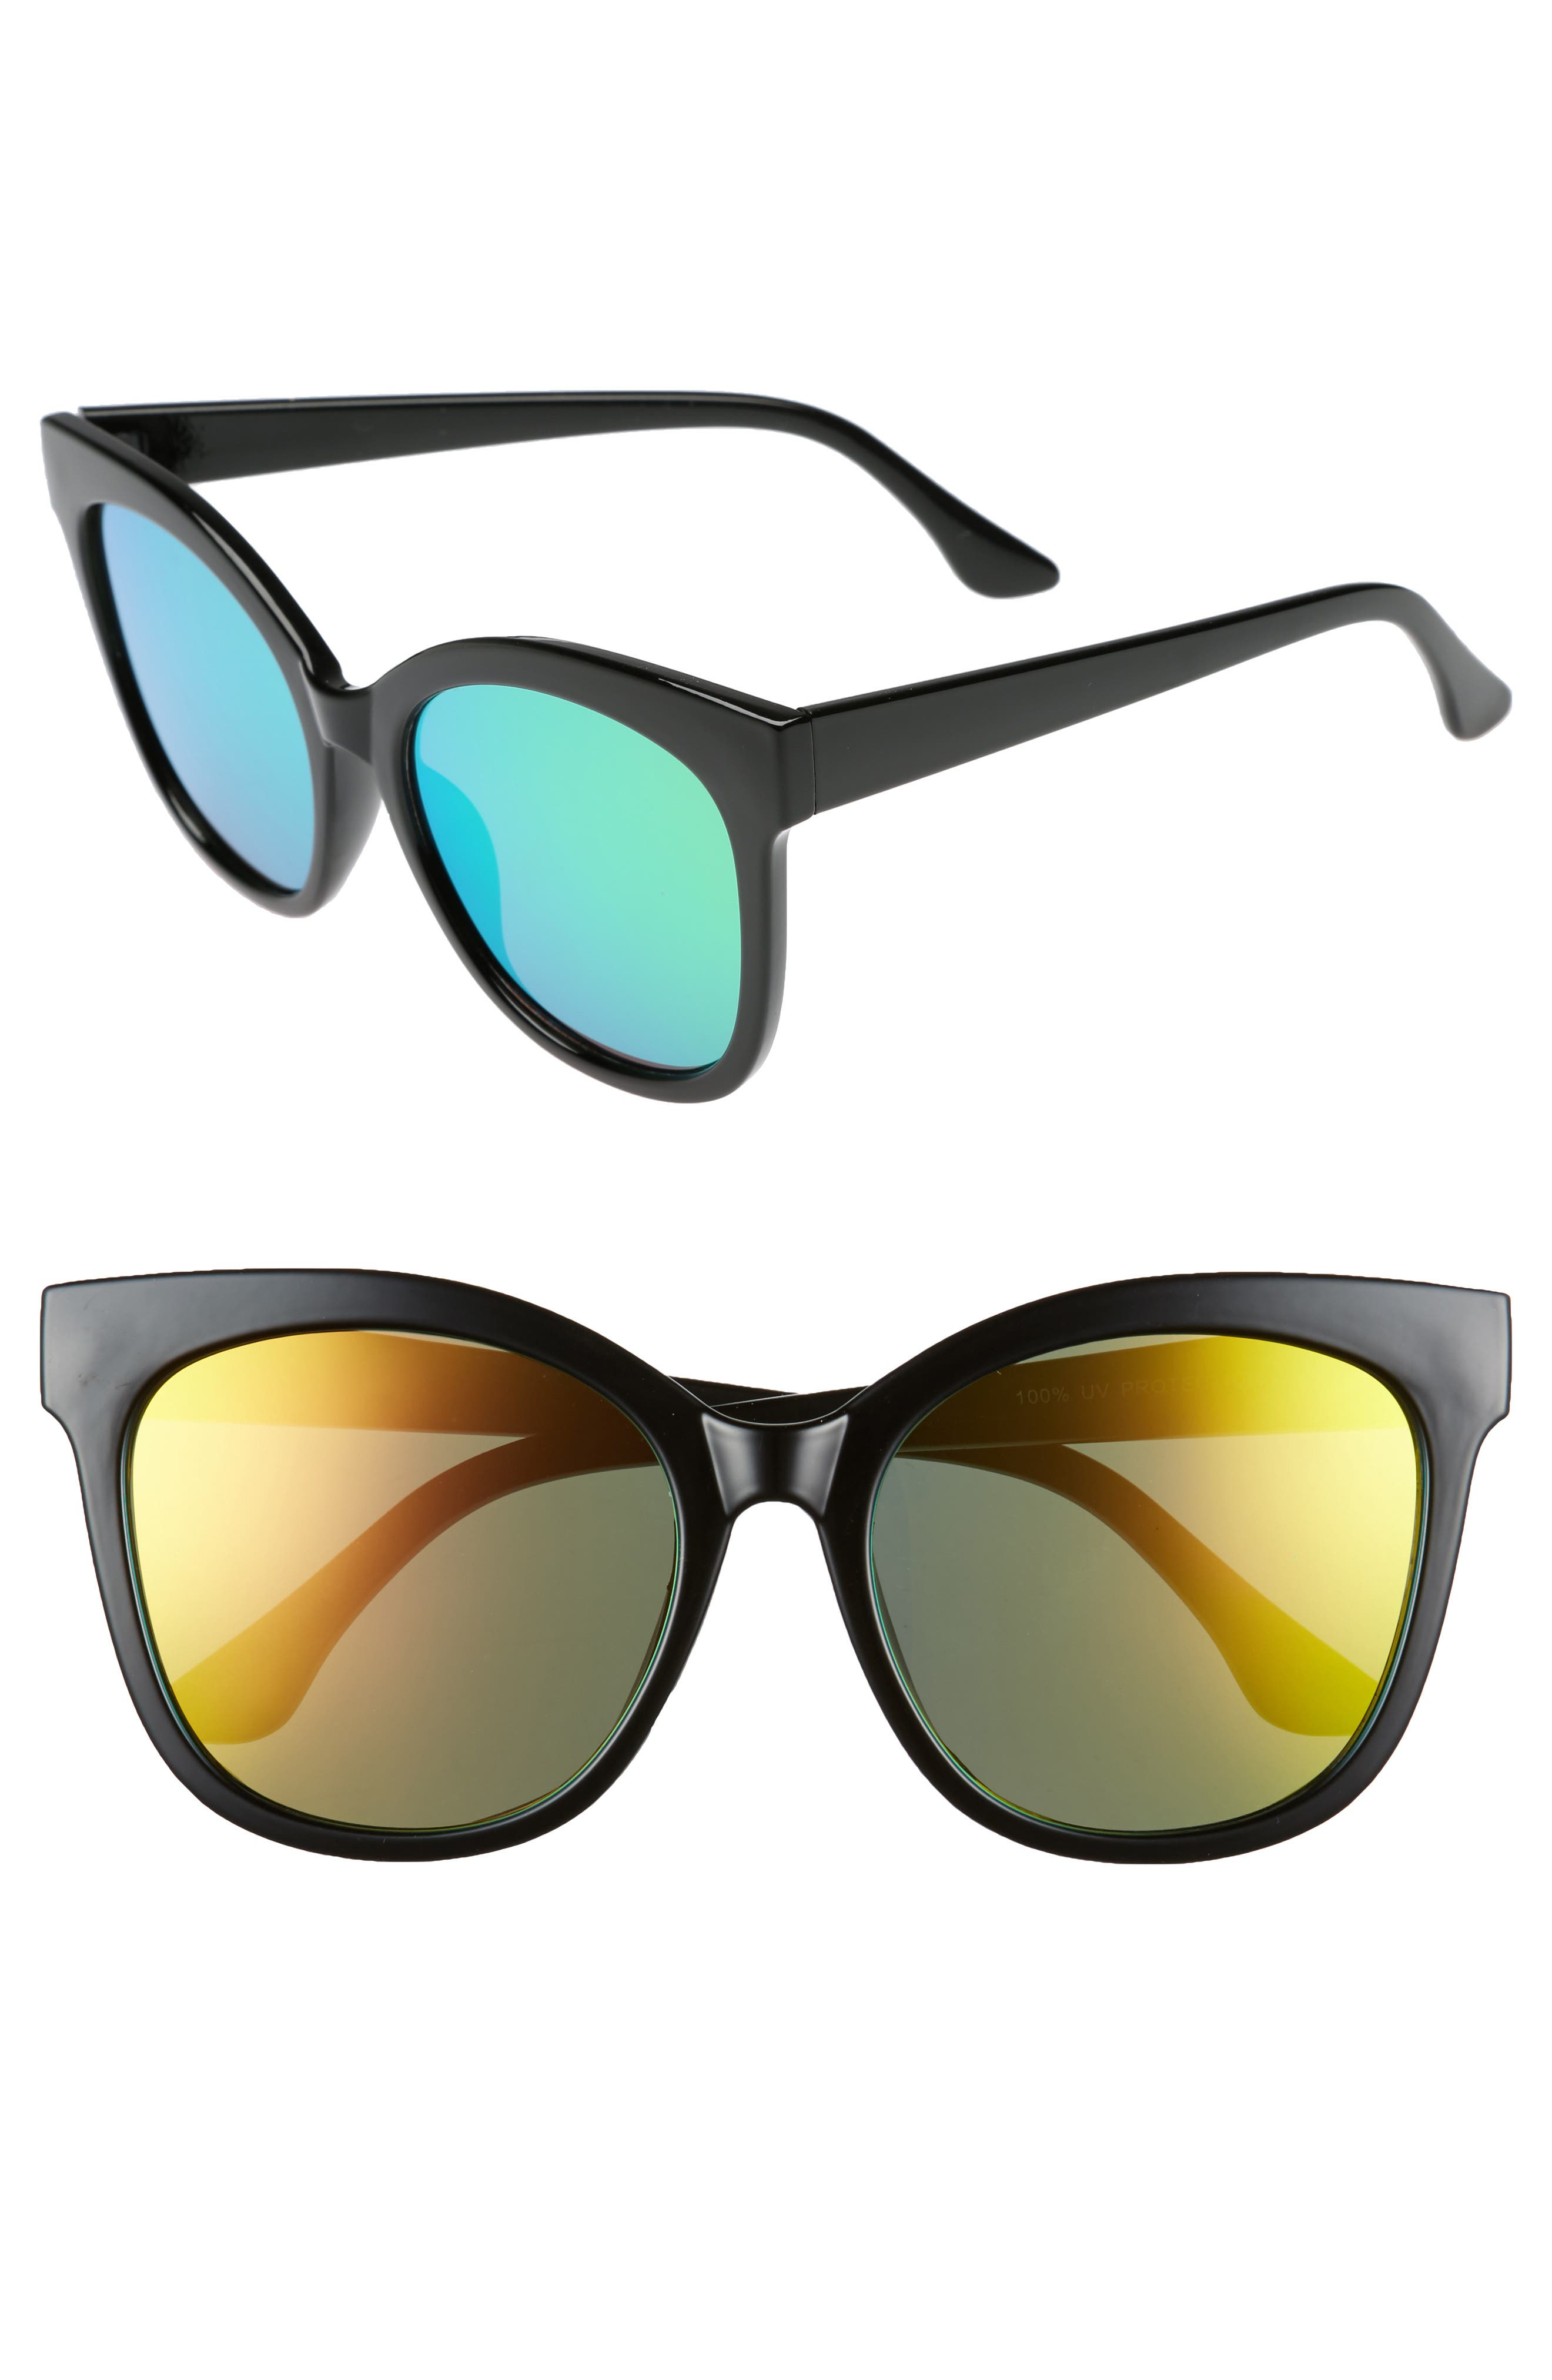 Alternate Image 1 Selected - BP. 55mm Square Sunglasses